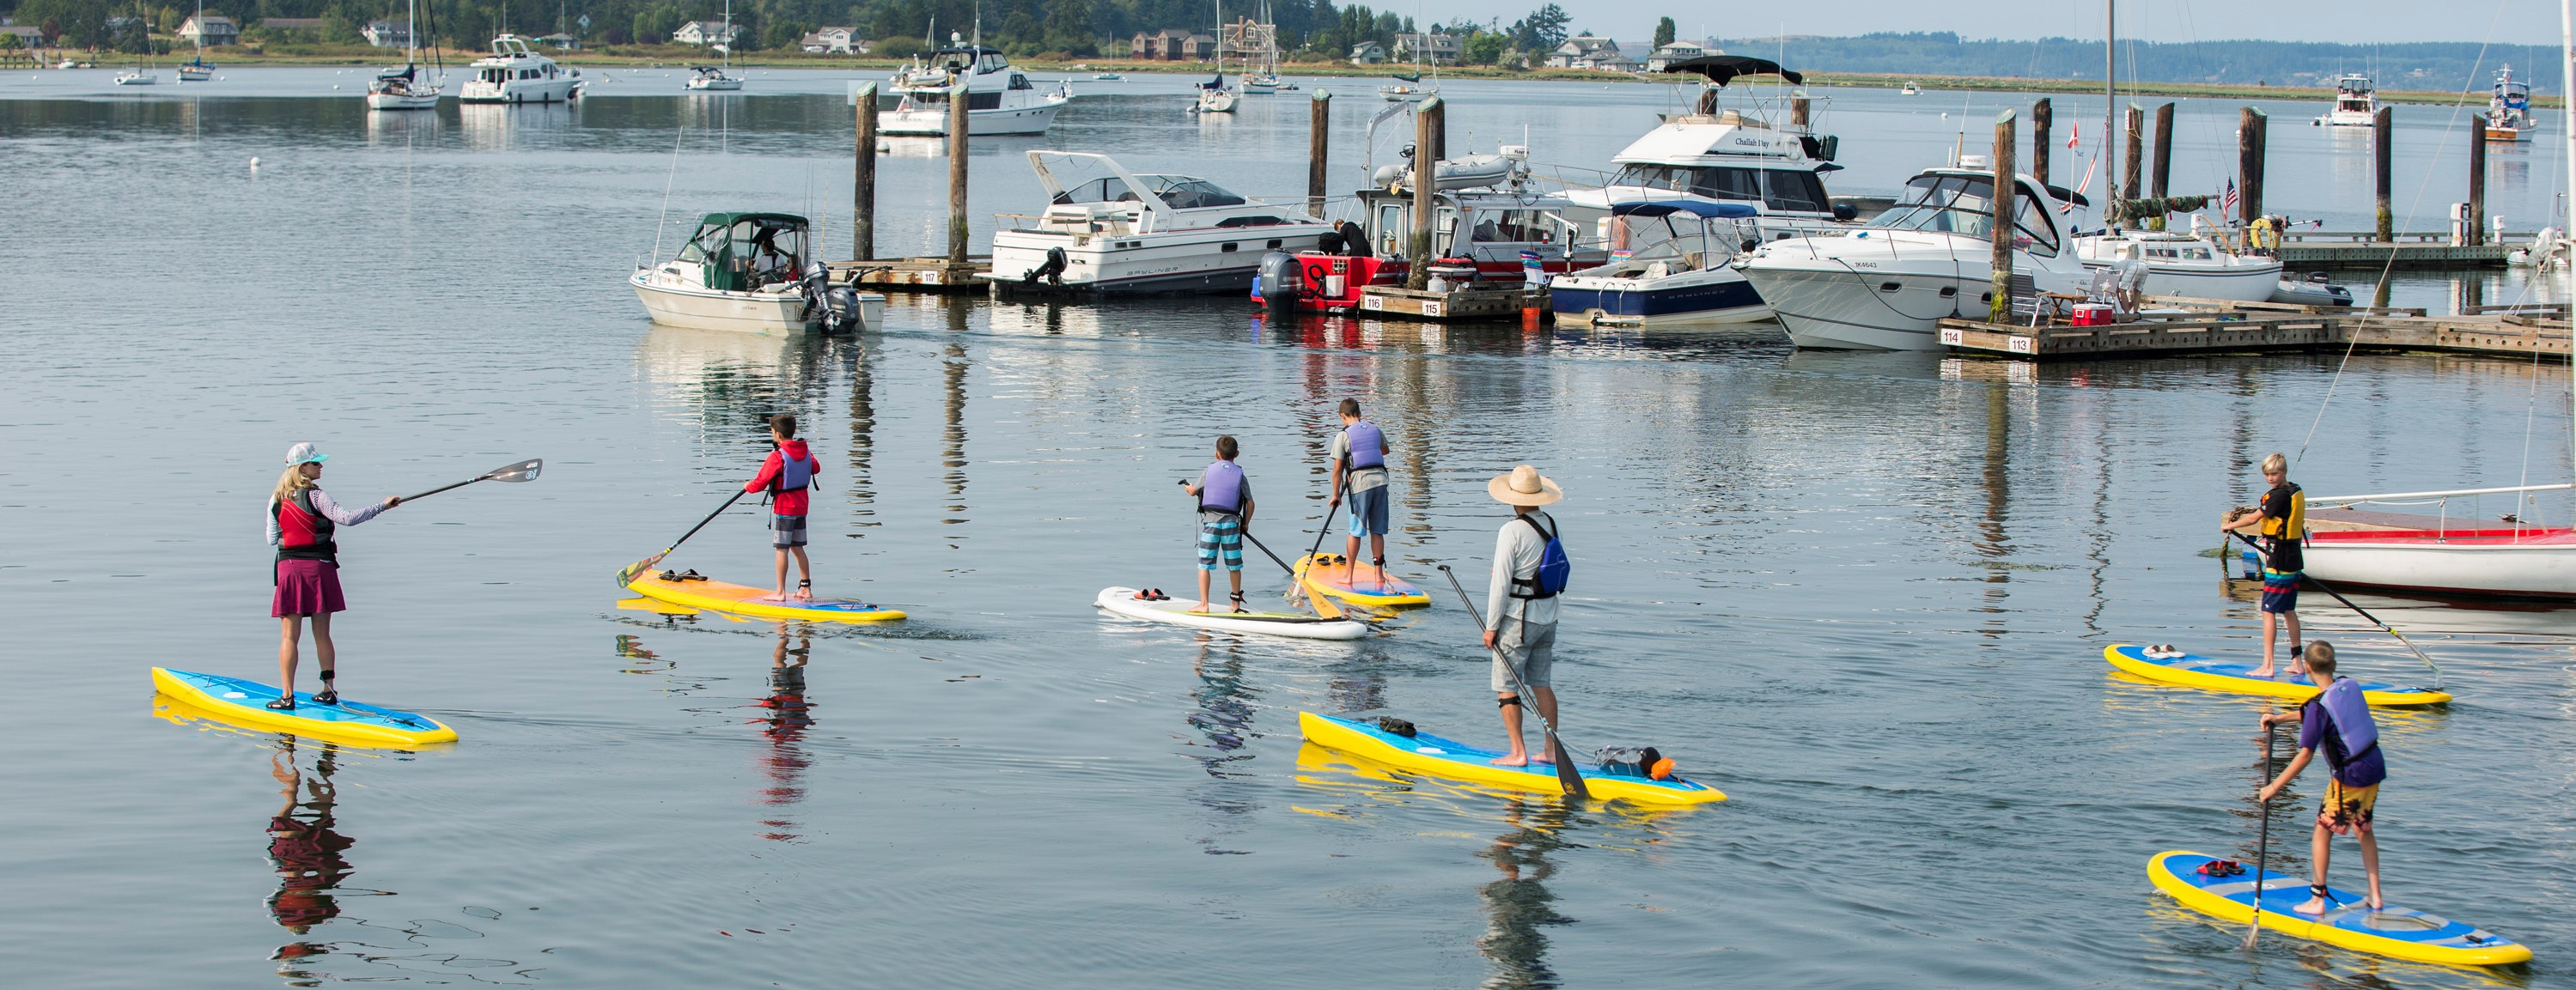 lopez island activities paddle boarding water